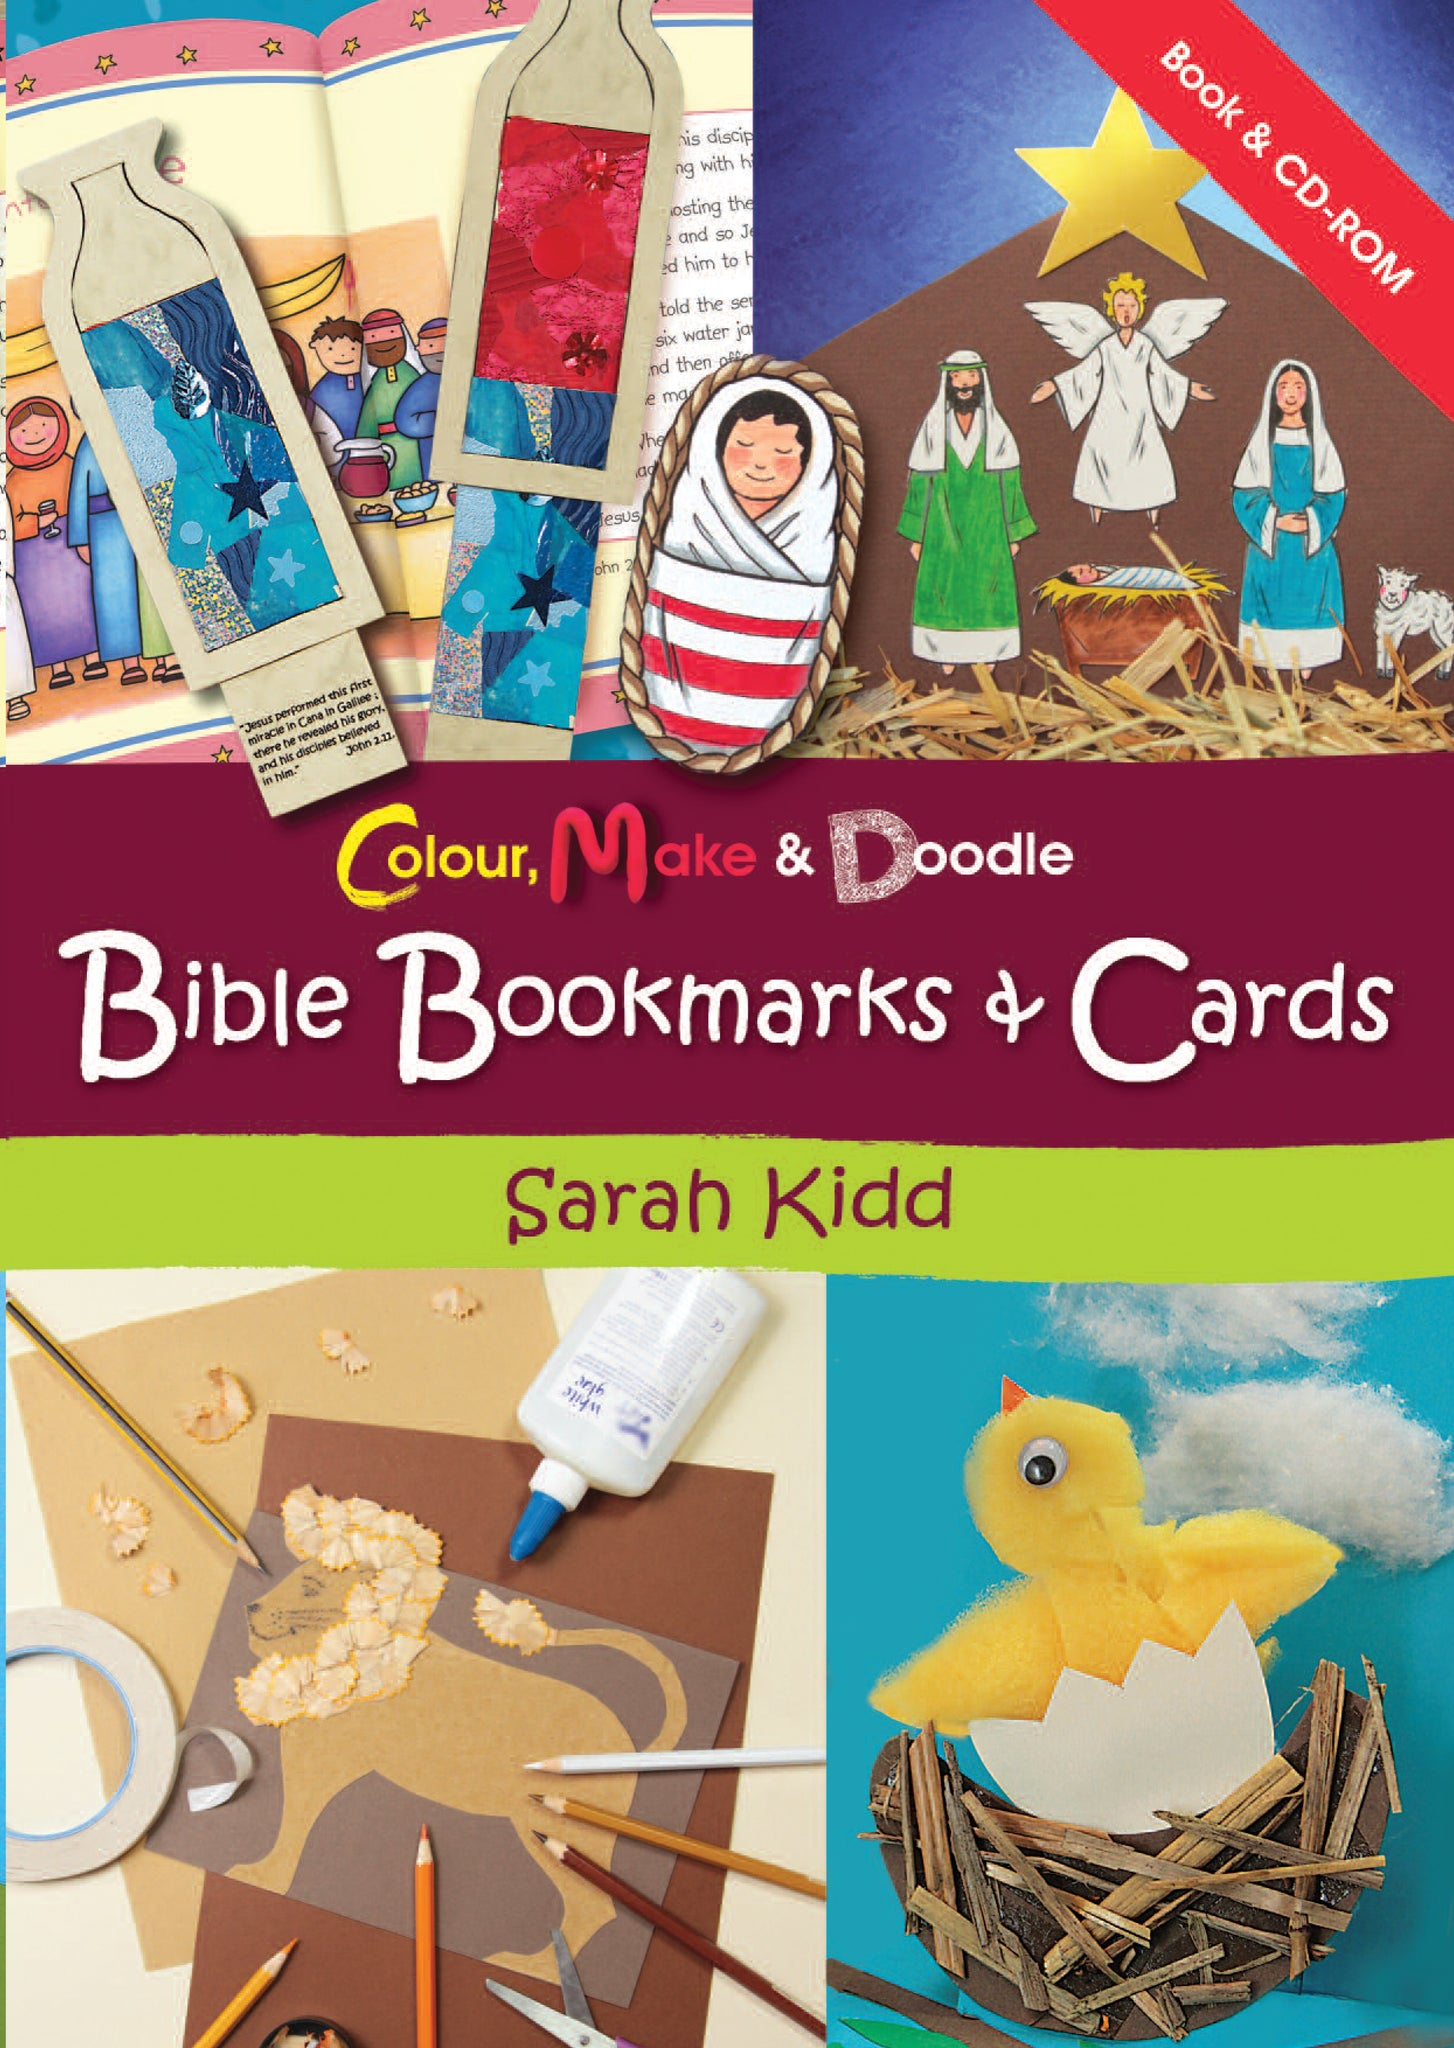 Bible Models & Mobiles - Colour, Make & DoodleBible Models & Mobiles - Colour, Make & Doodle